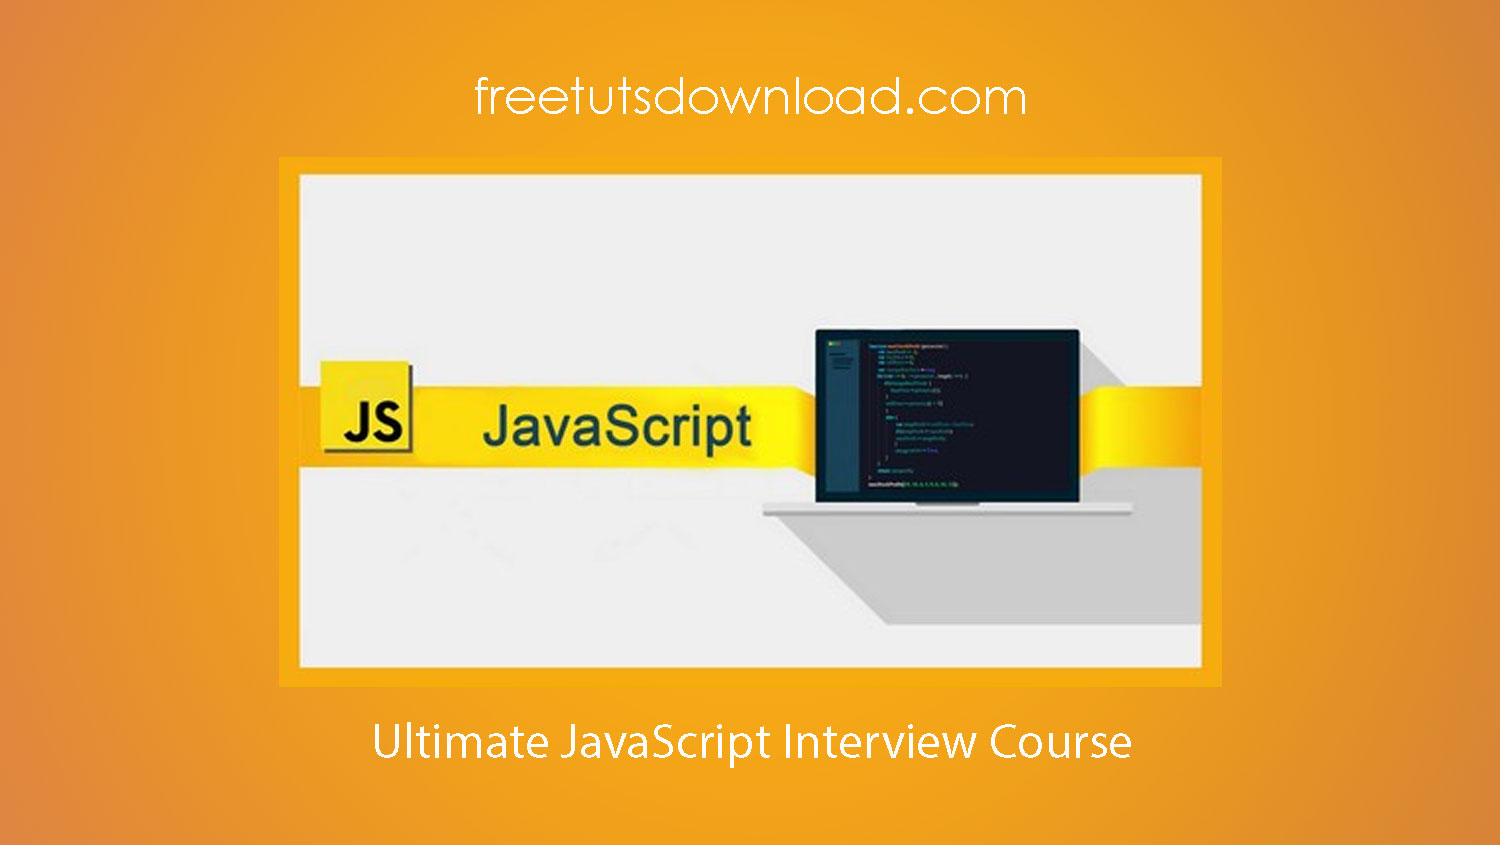 Ultimate JavaScript Interview Course Free Download